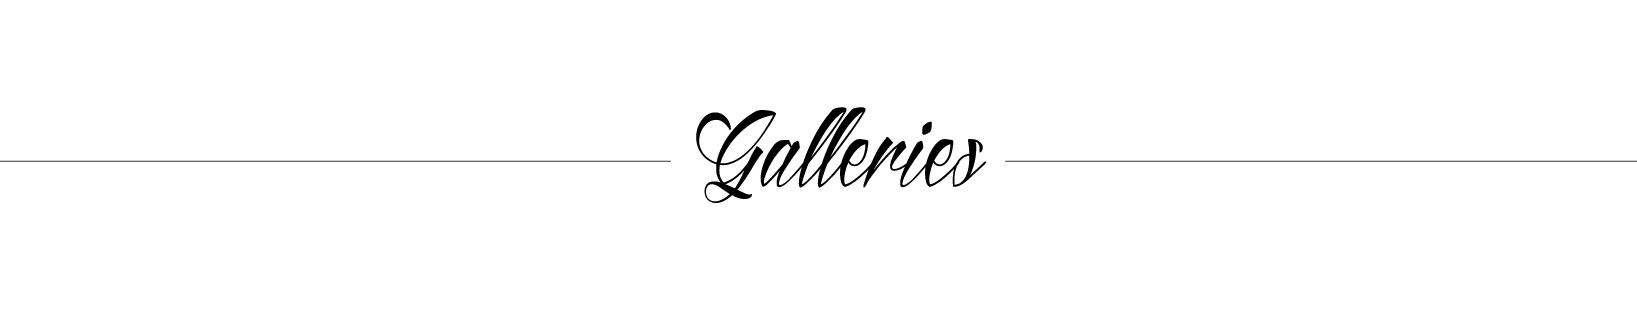 Galleries.png